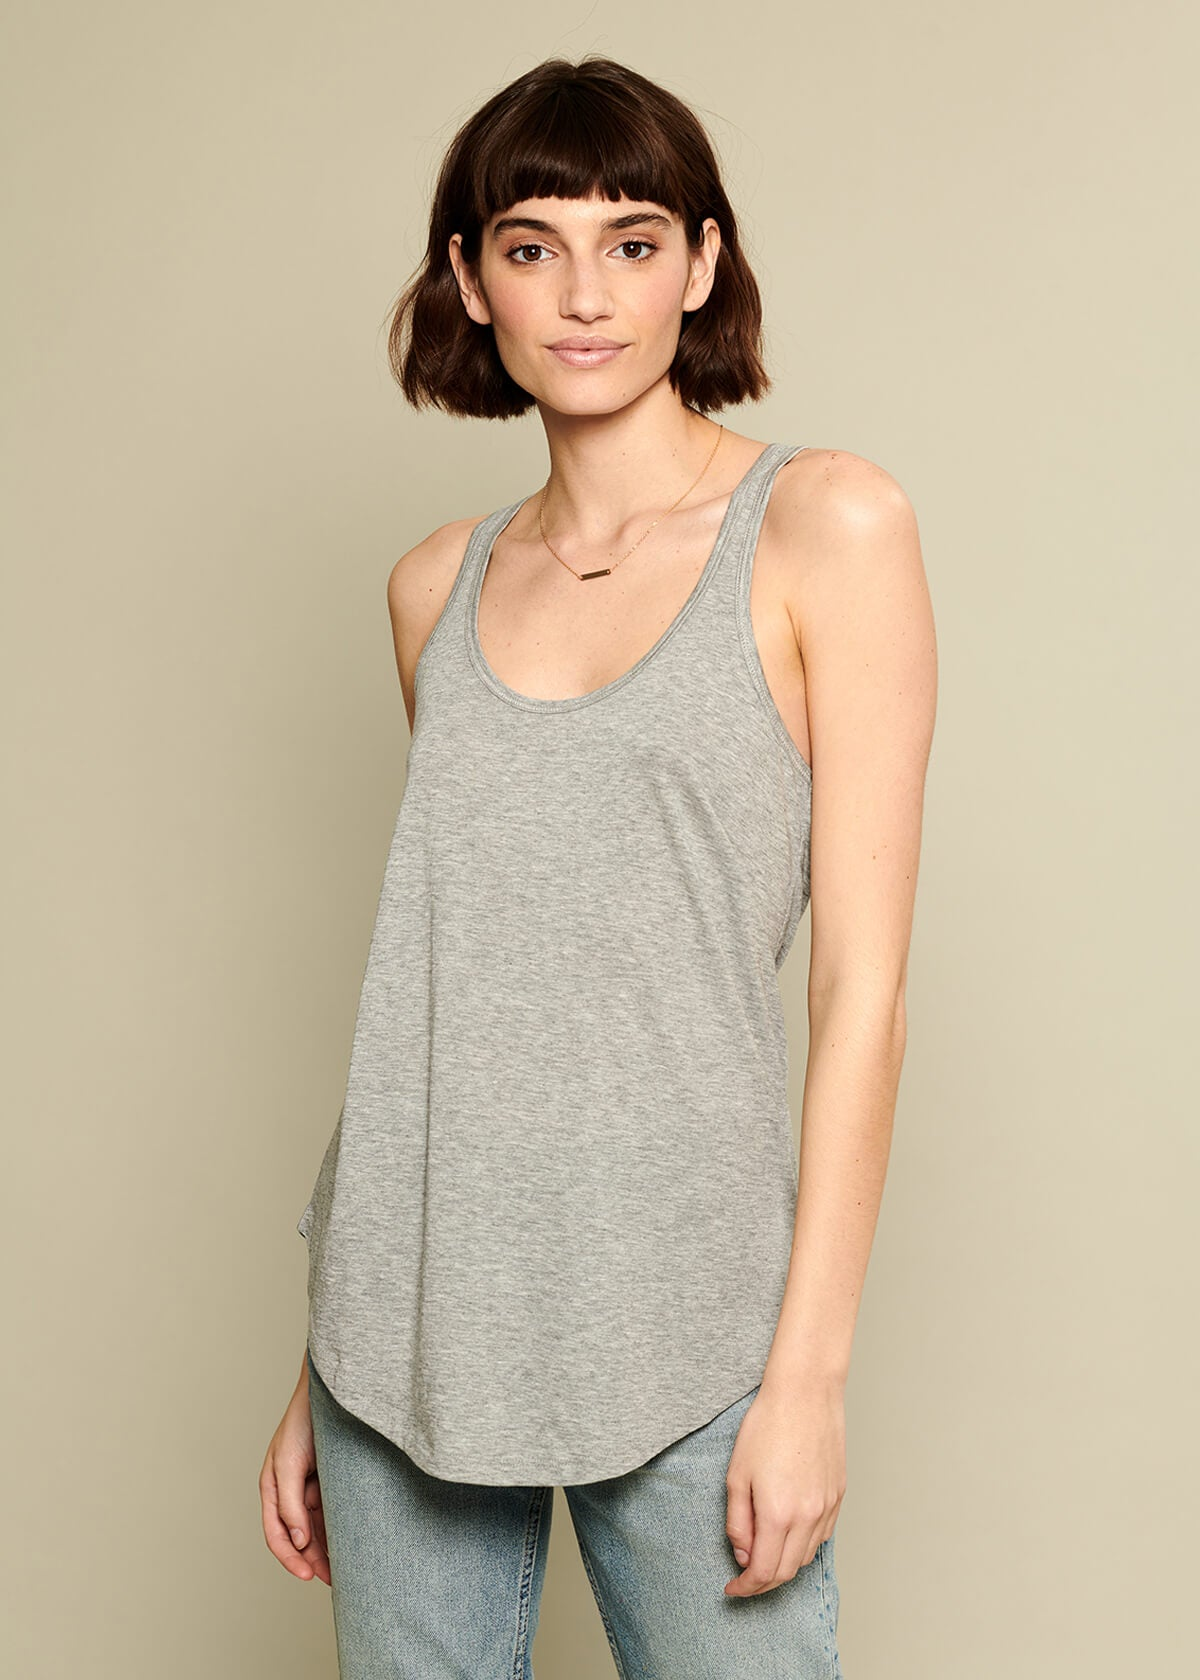 Bella - Racer Back Tank - Heather Gray